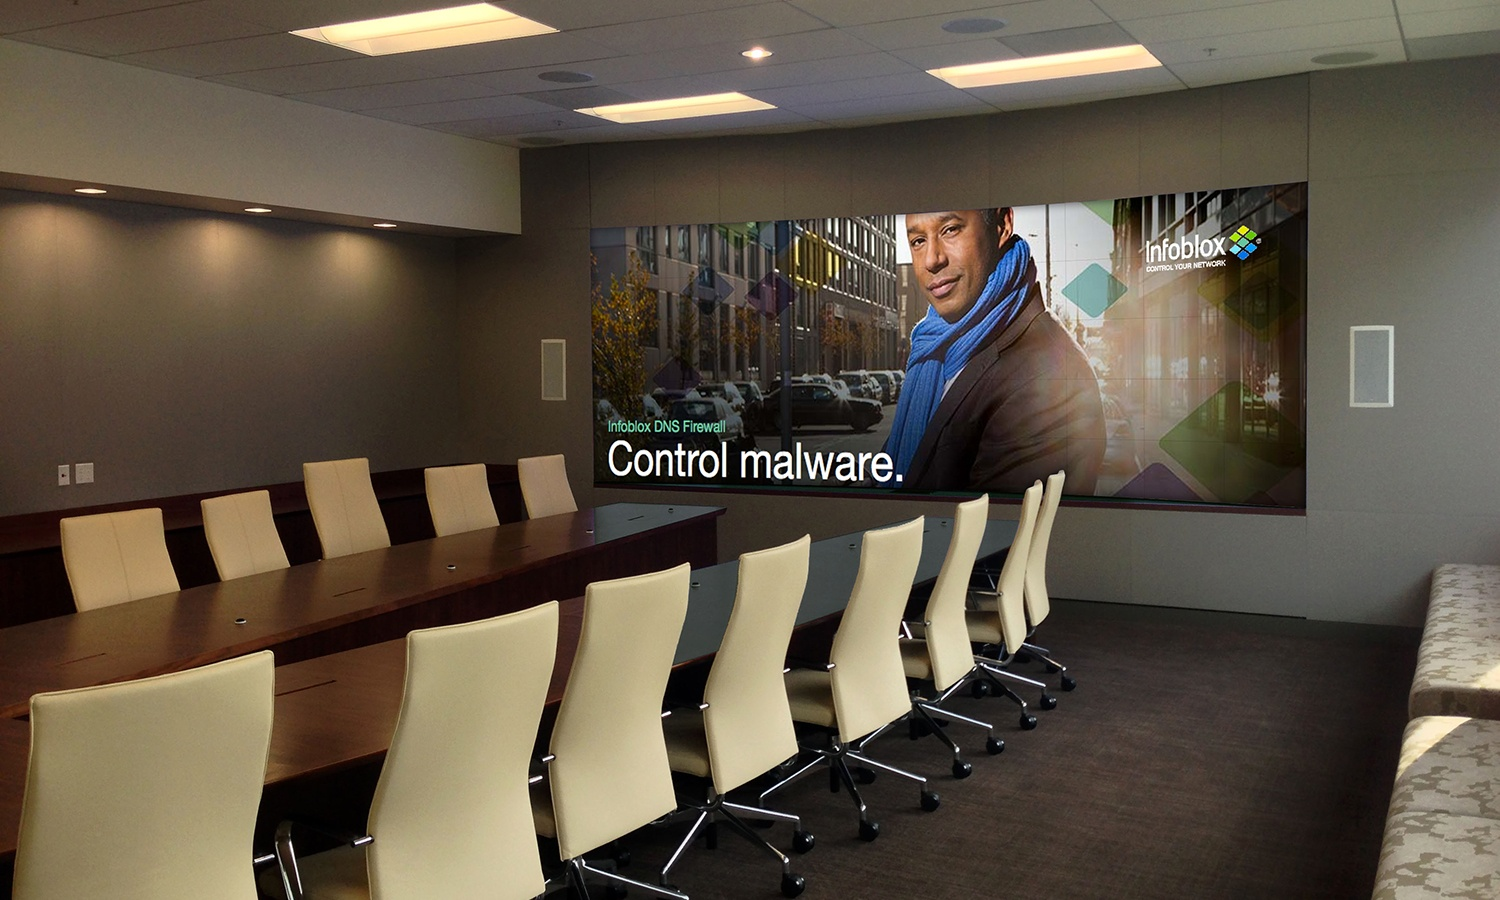 prysm-video-wall-at-infoblox.jpg